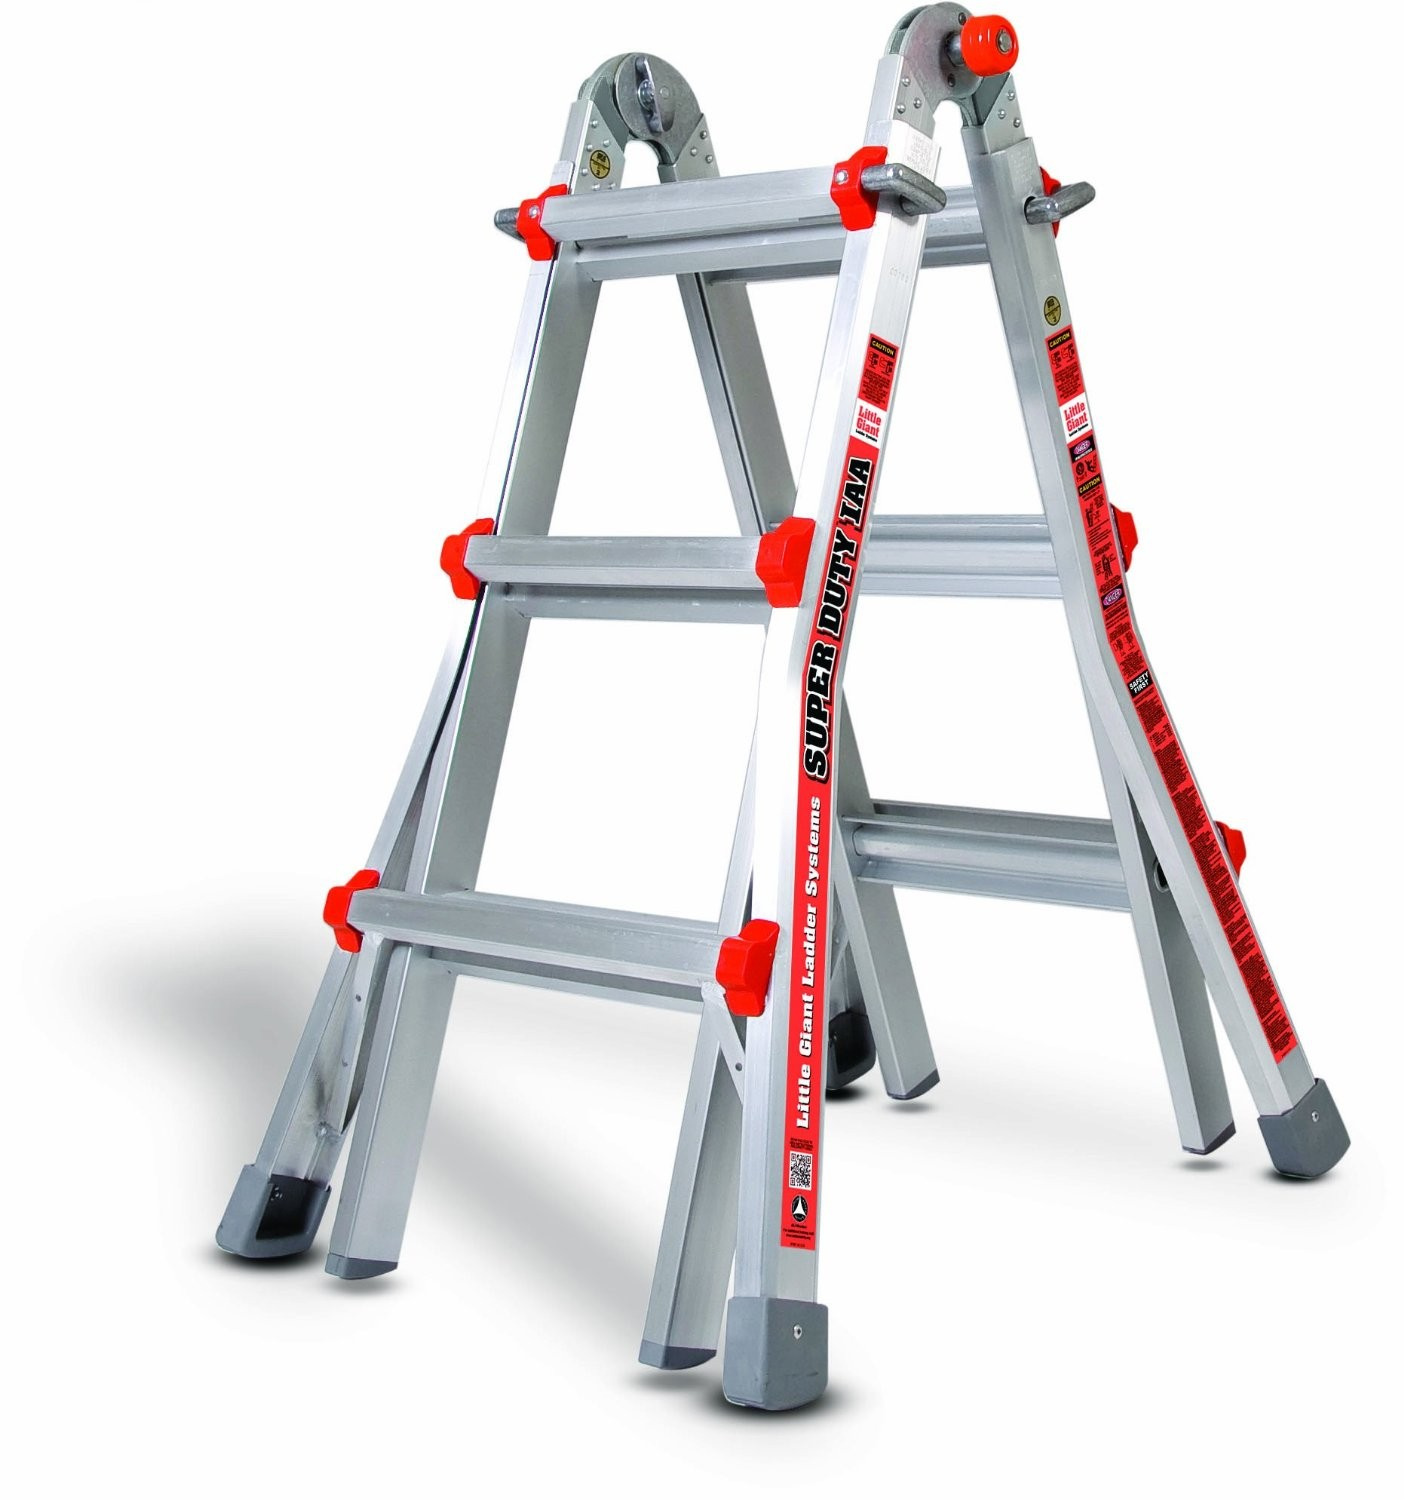 Super Duty Type 1aa Little Giant Ladder 13 10401 Multi